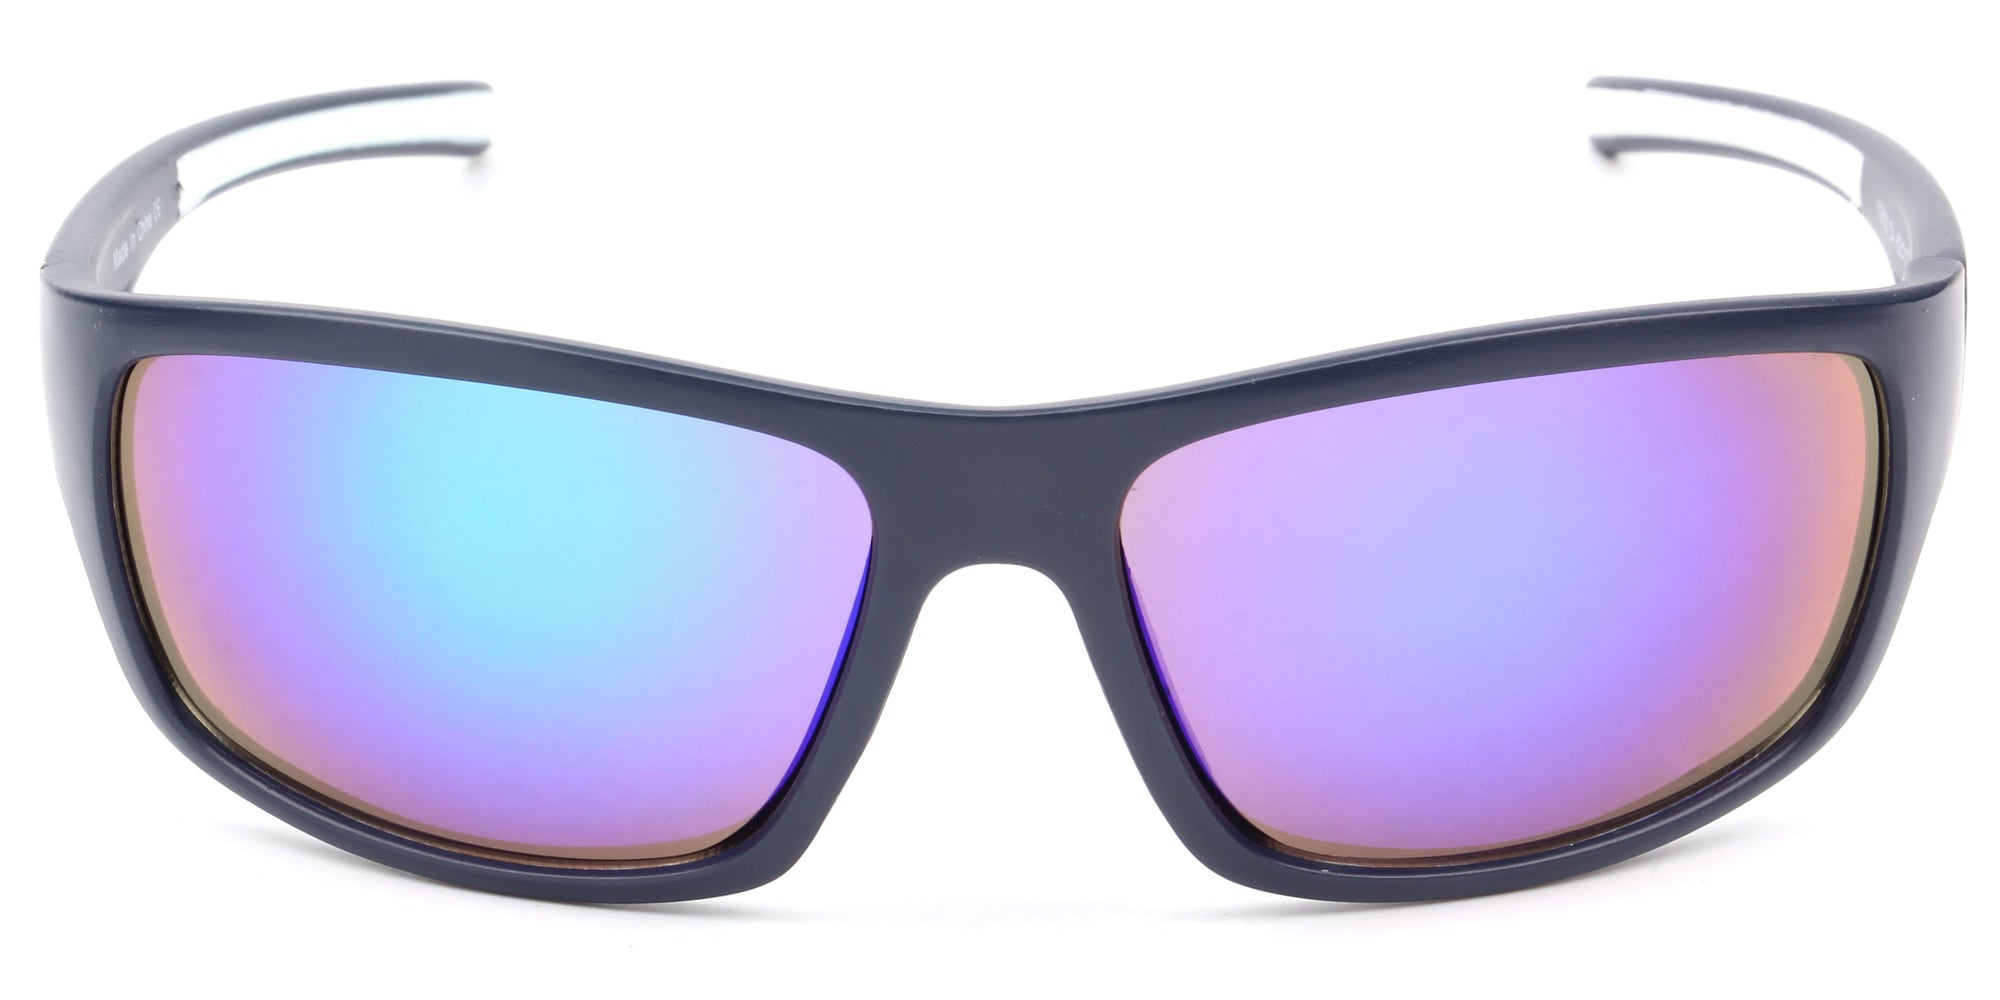 Y3002 - Men Sports Rectangular Sunglasses - Iris Fashion Inc. | Wholesale Sunglasses and Glasses